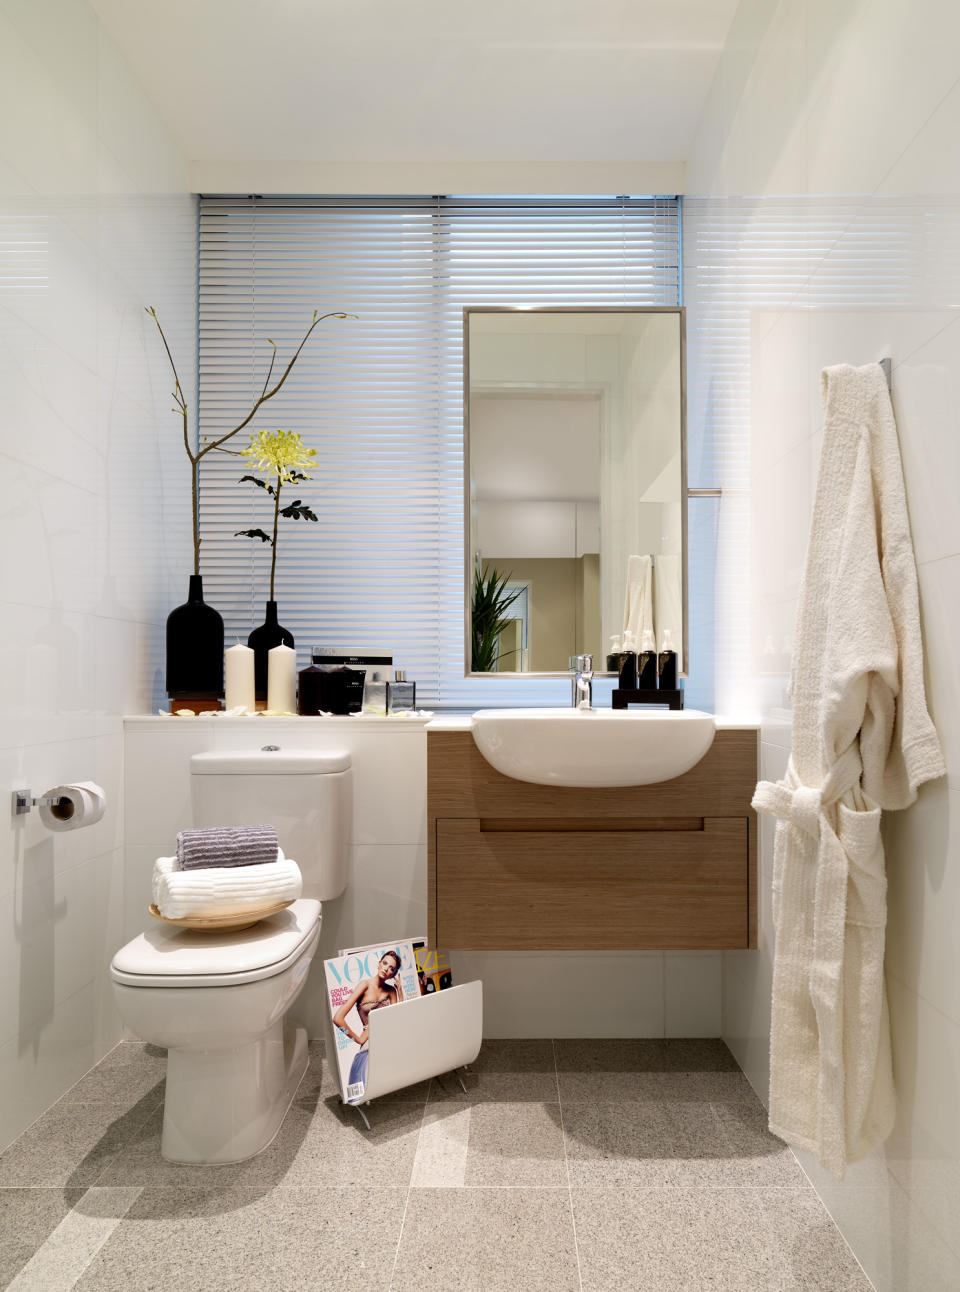 Modern contemporary bathroom interior design